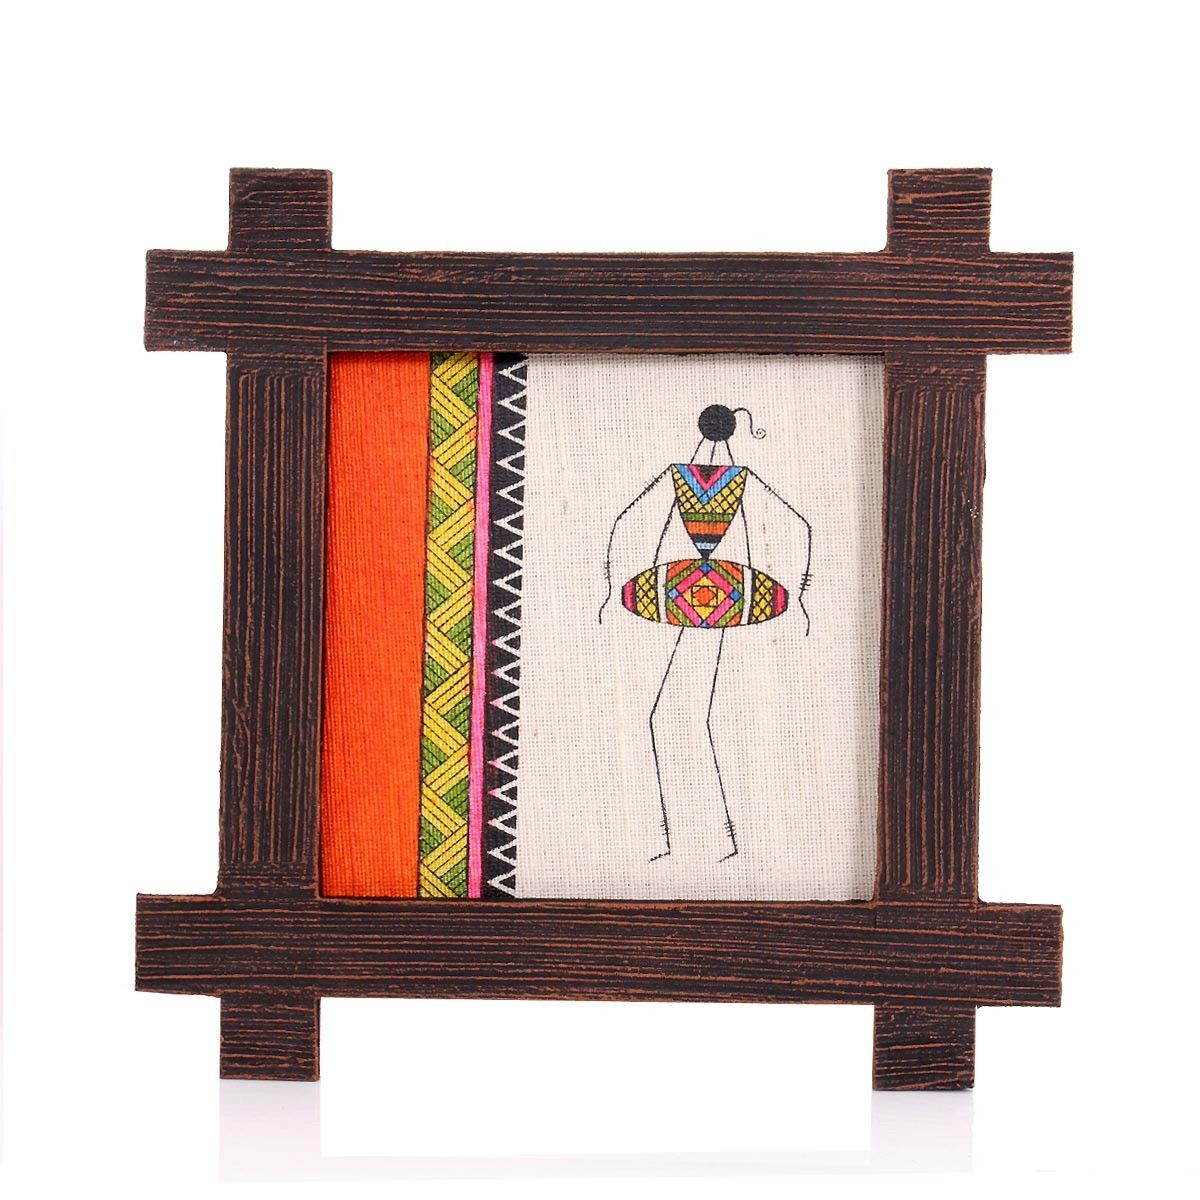 Wood Wall Hanging Art Part - 38: Wooden Wall Hanging - Jute Art Warli | #WedTree #ReturnGifts #OnlineShopping